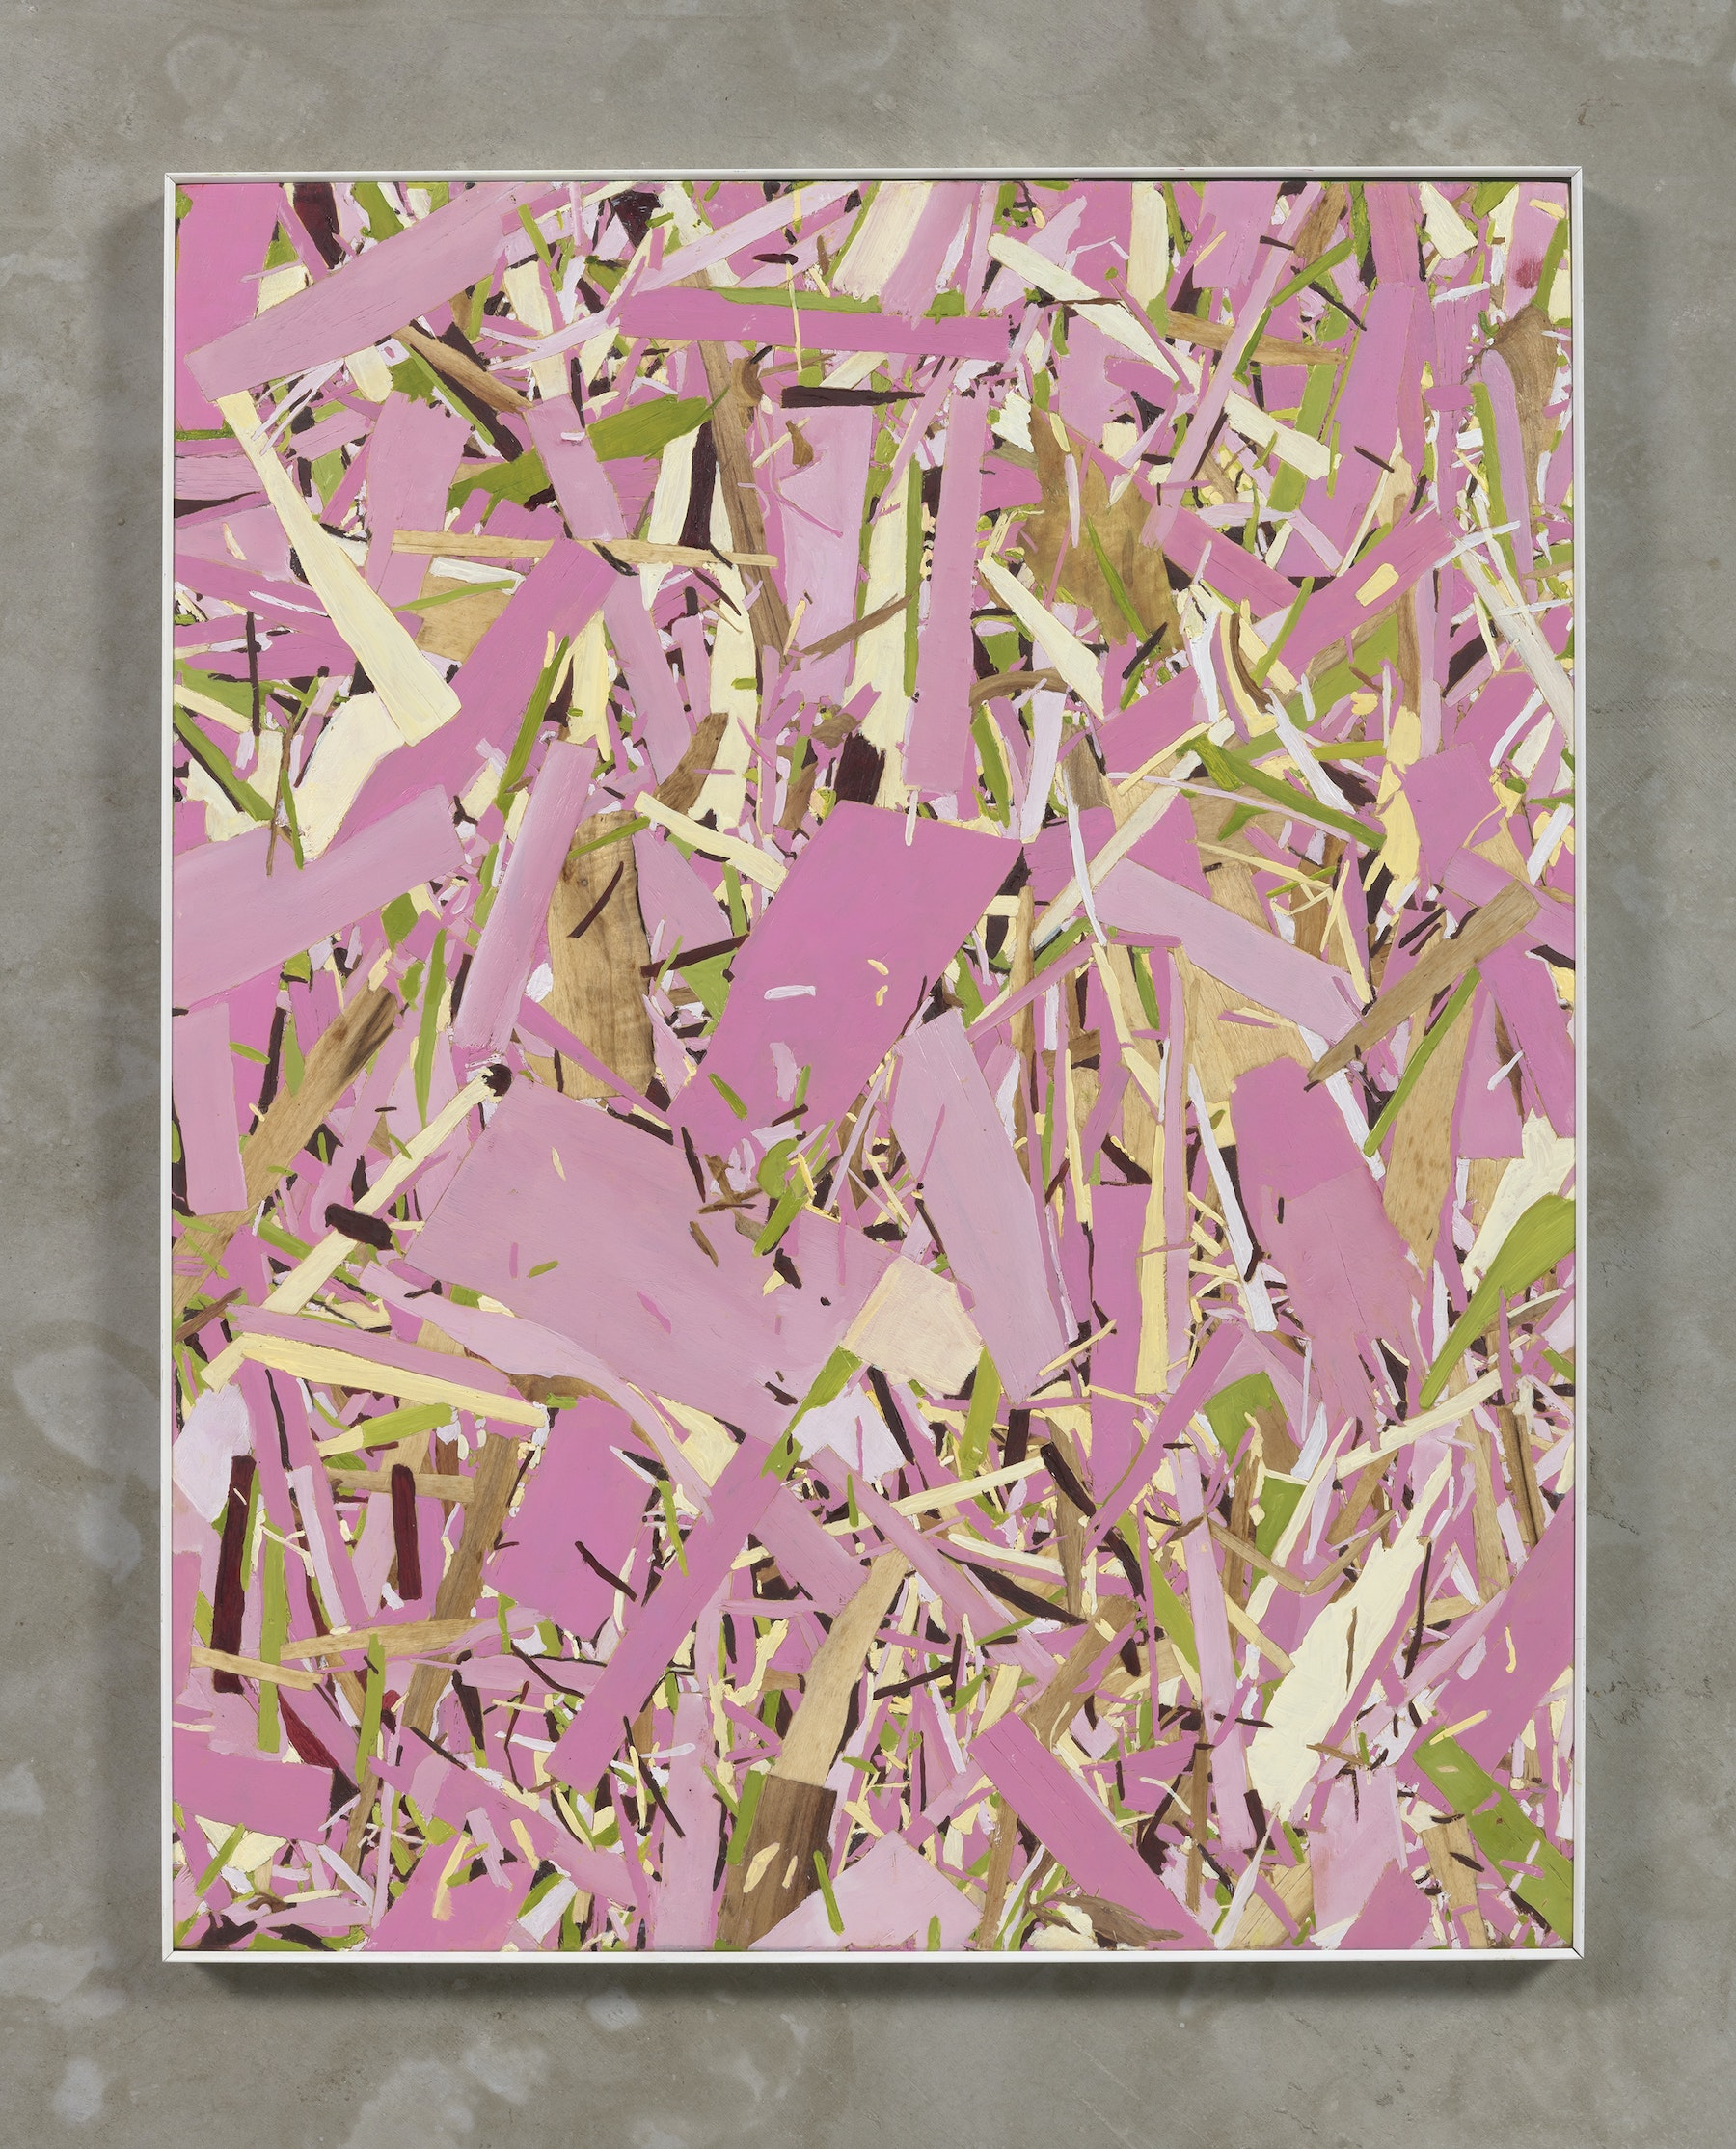 """Kim Dingle """"Home Depot Coloring book, pink, (anyone can do it),"""" 2018 Oil on osb board 24 x 19"""" [HxW] (60.96 x 48.26 cm) Inventory #DIN243 Courtesy of the artist and Vielmetter Los Angeles Photo credit: Robert Wedemeyer"""